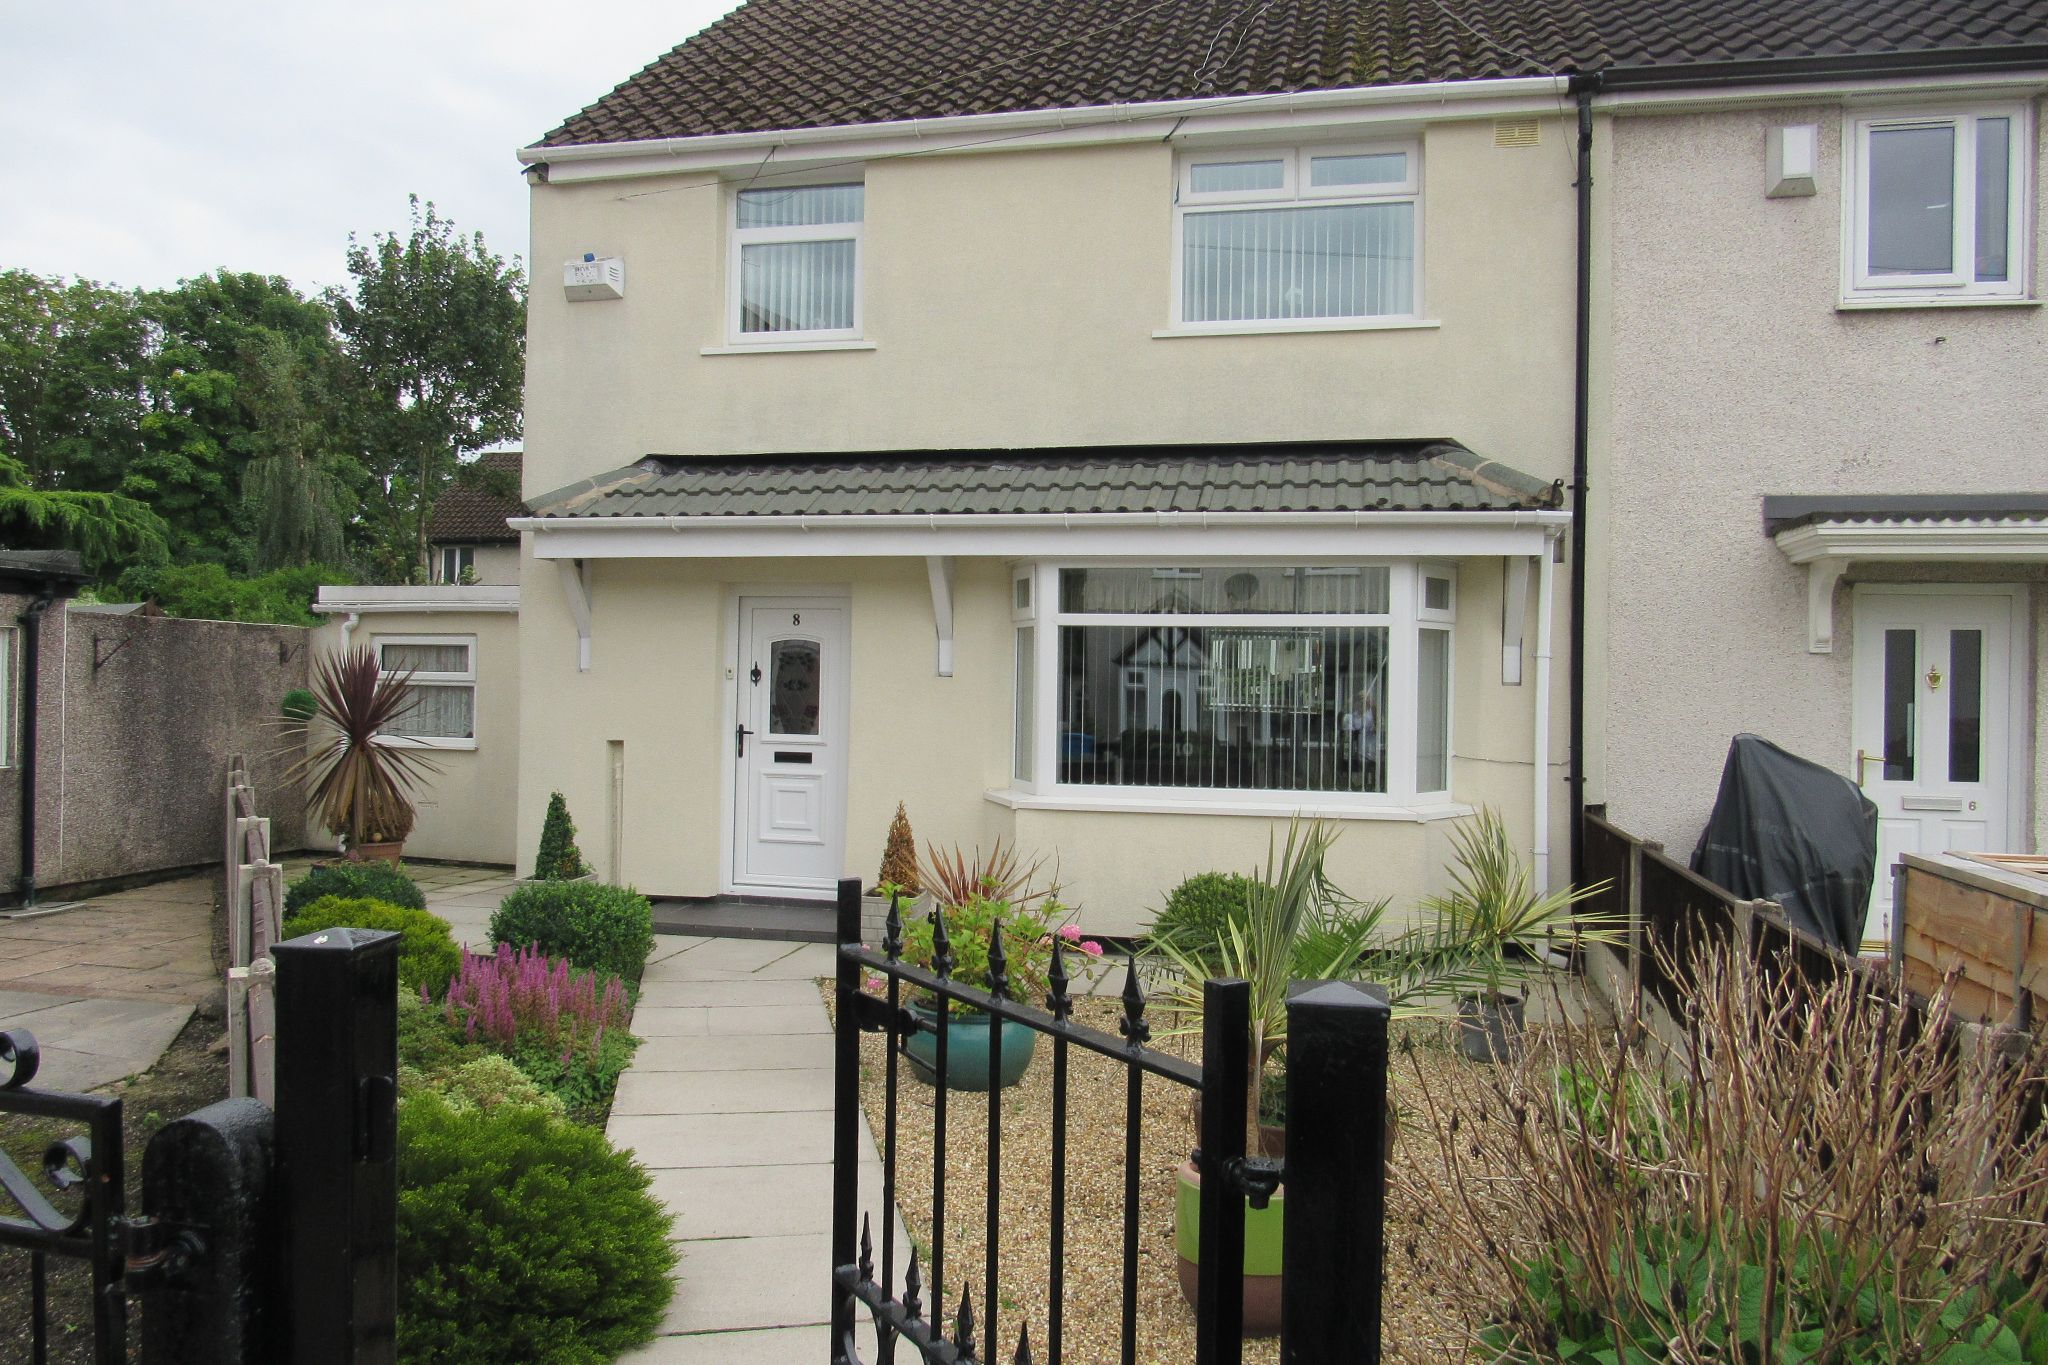 3 bedroom end terraced house SSTC in Manchester - Photograph 31.